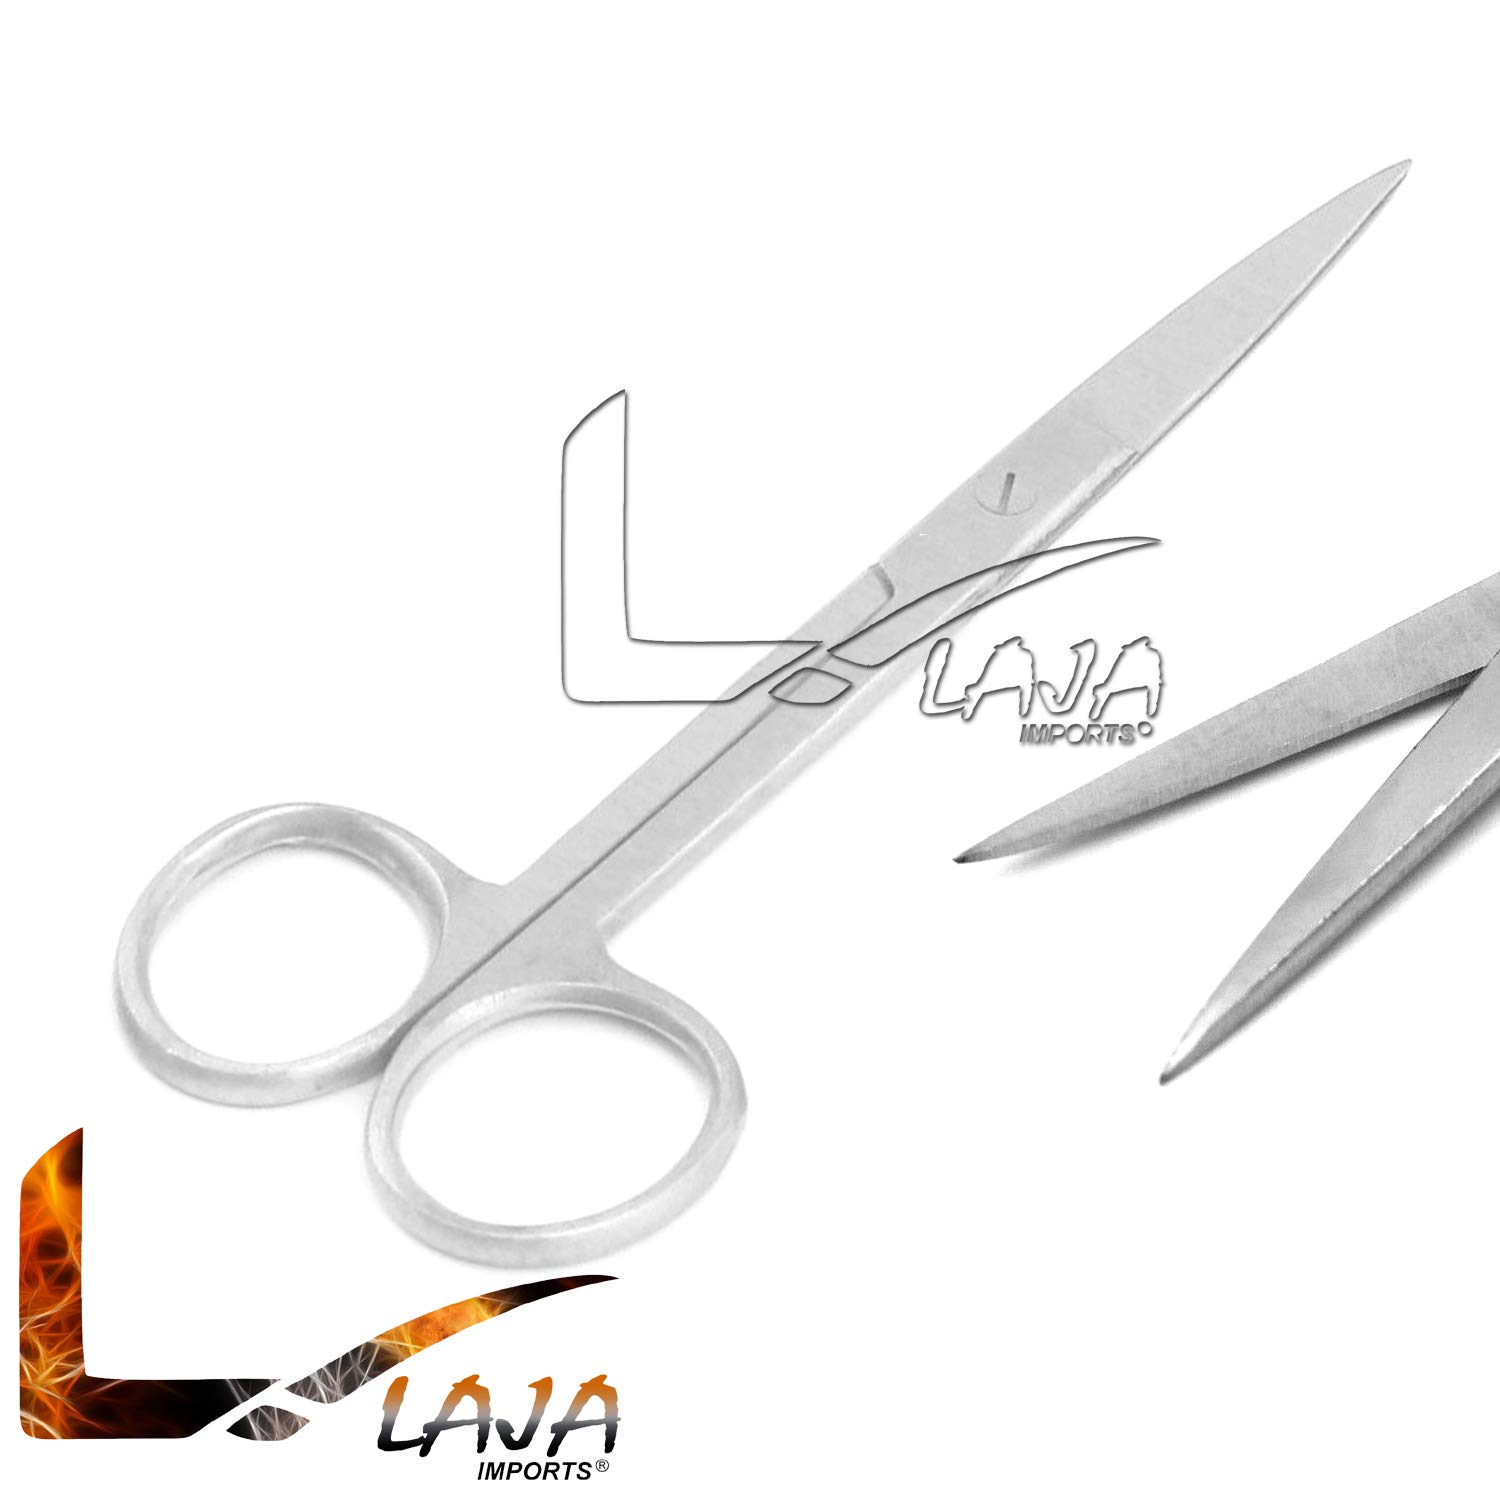 LAJA Imports Stainless Steel Scissors 5.5'' Length Operating Scissor Dissecting Scissors Sharp Straight Silver for Care and Home Nursing